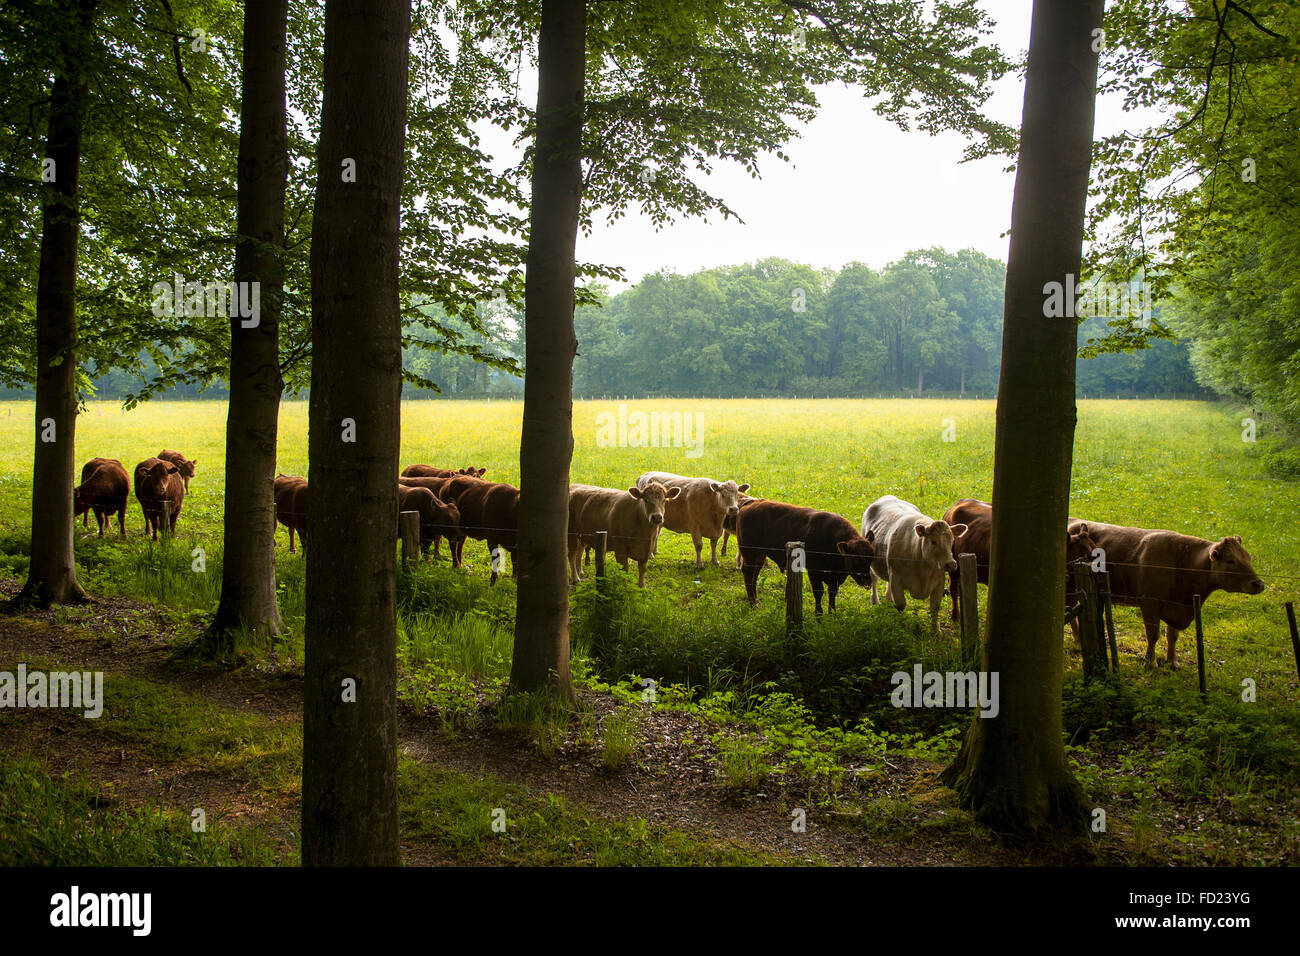 Europe, Germany, North Rhine-Westphalia, Lower Rhine Region, alley at the river Issel near Wesel. - Stock Image